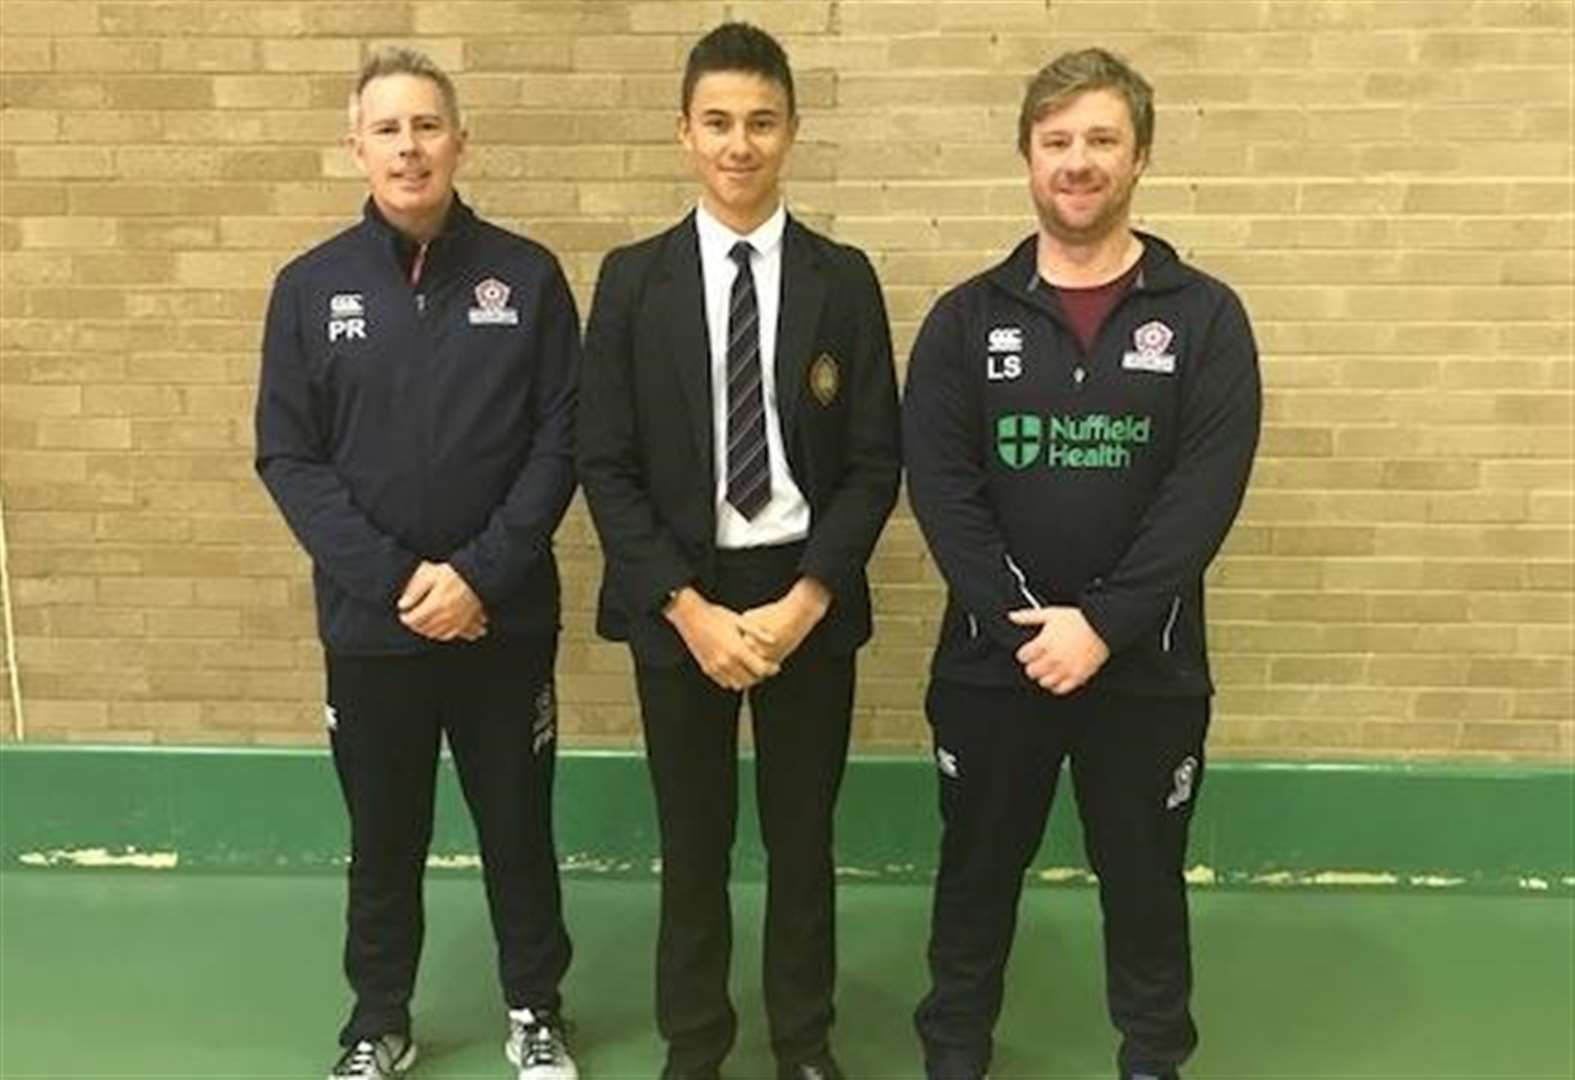 Wisbech Grammar School proud of Year 10 pupil George Gowler accepting place on Emerging Players Programme at Northamptonshire County Cricket Club